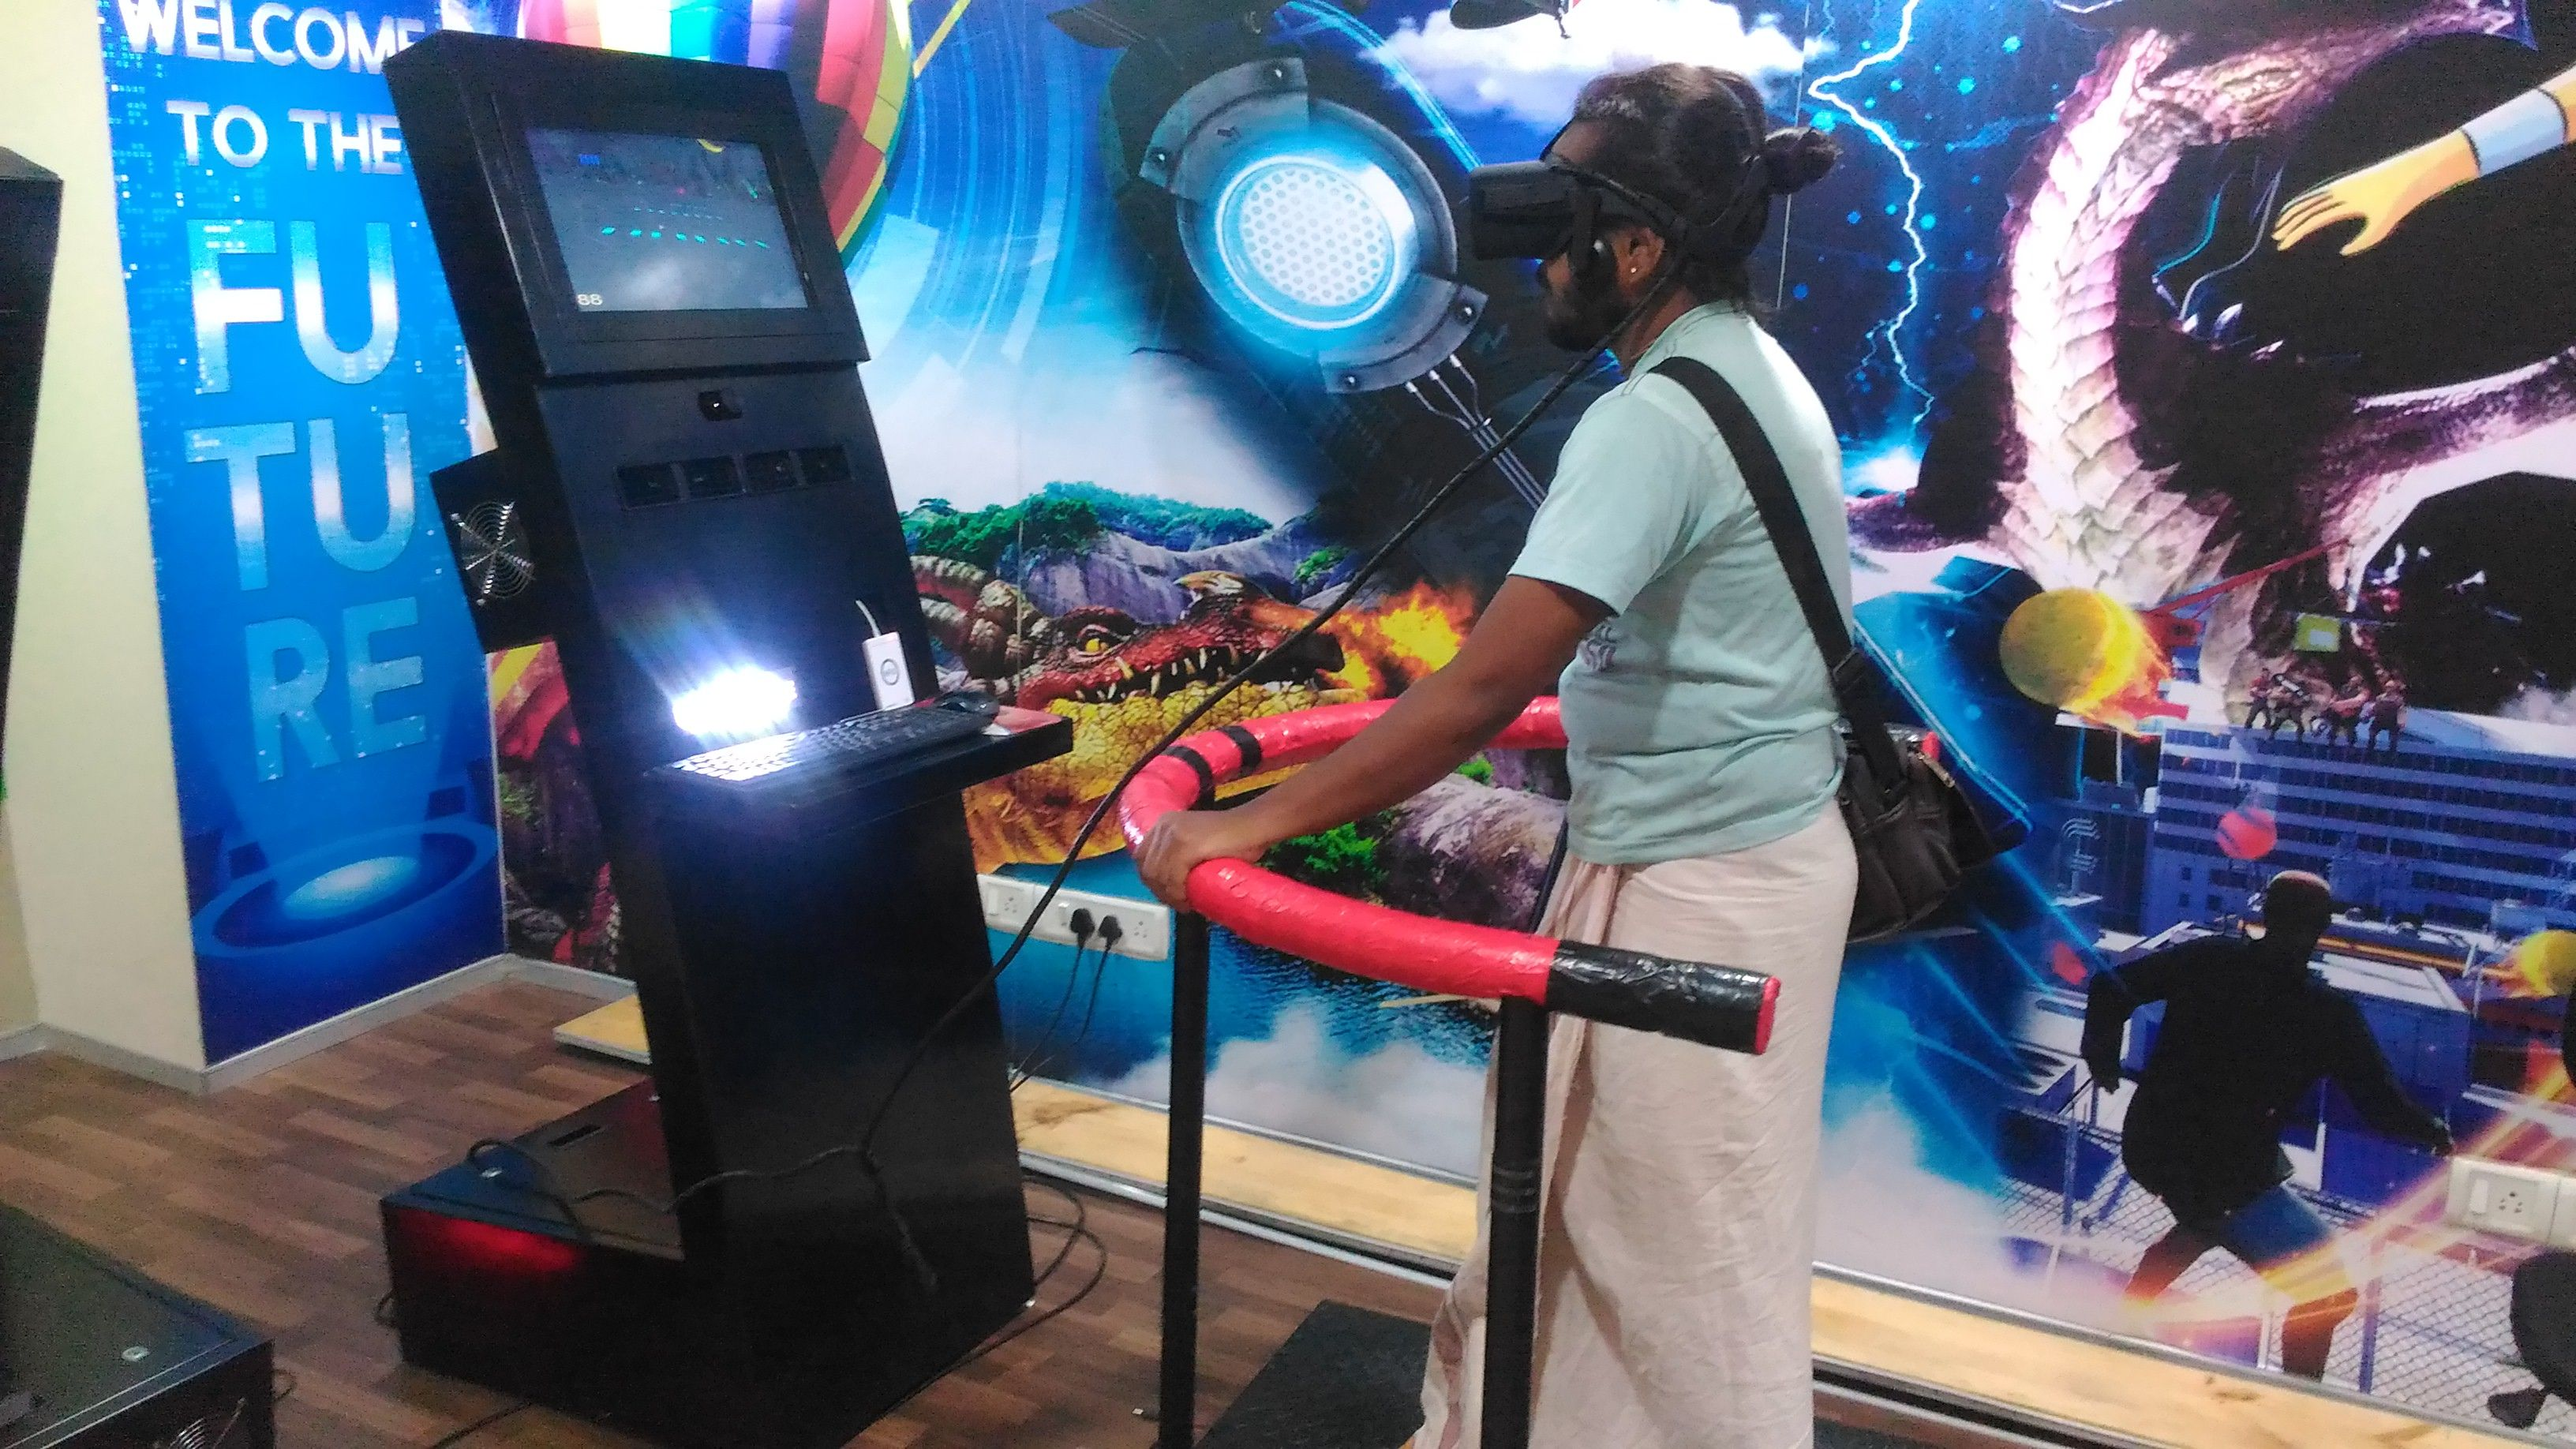 Our regular visitor Sriram just can't get enough of our VR